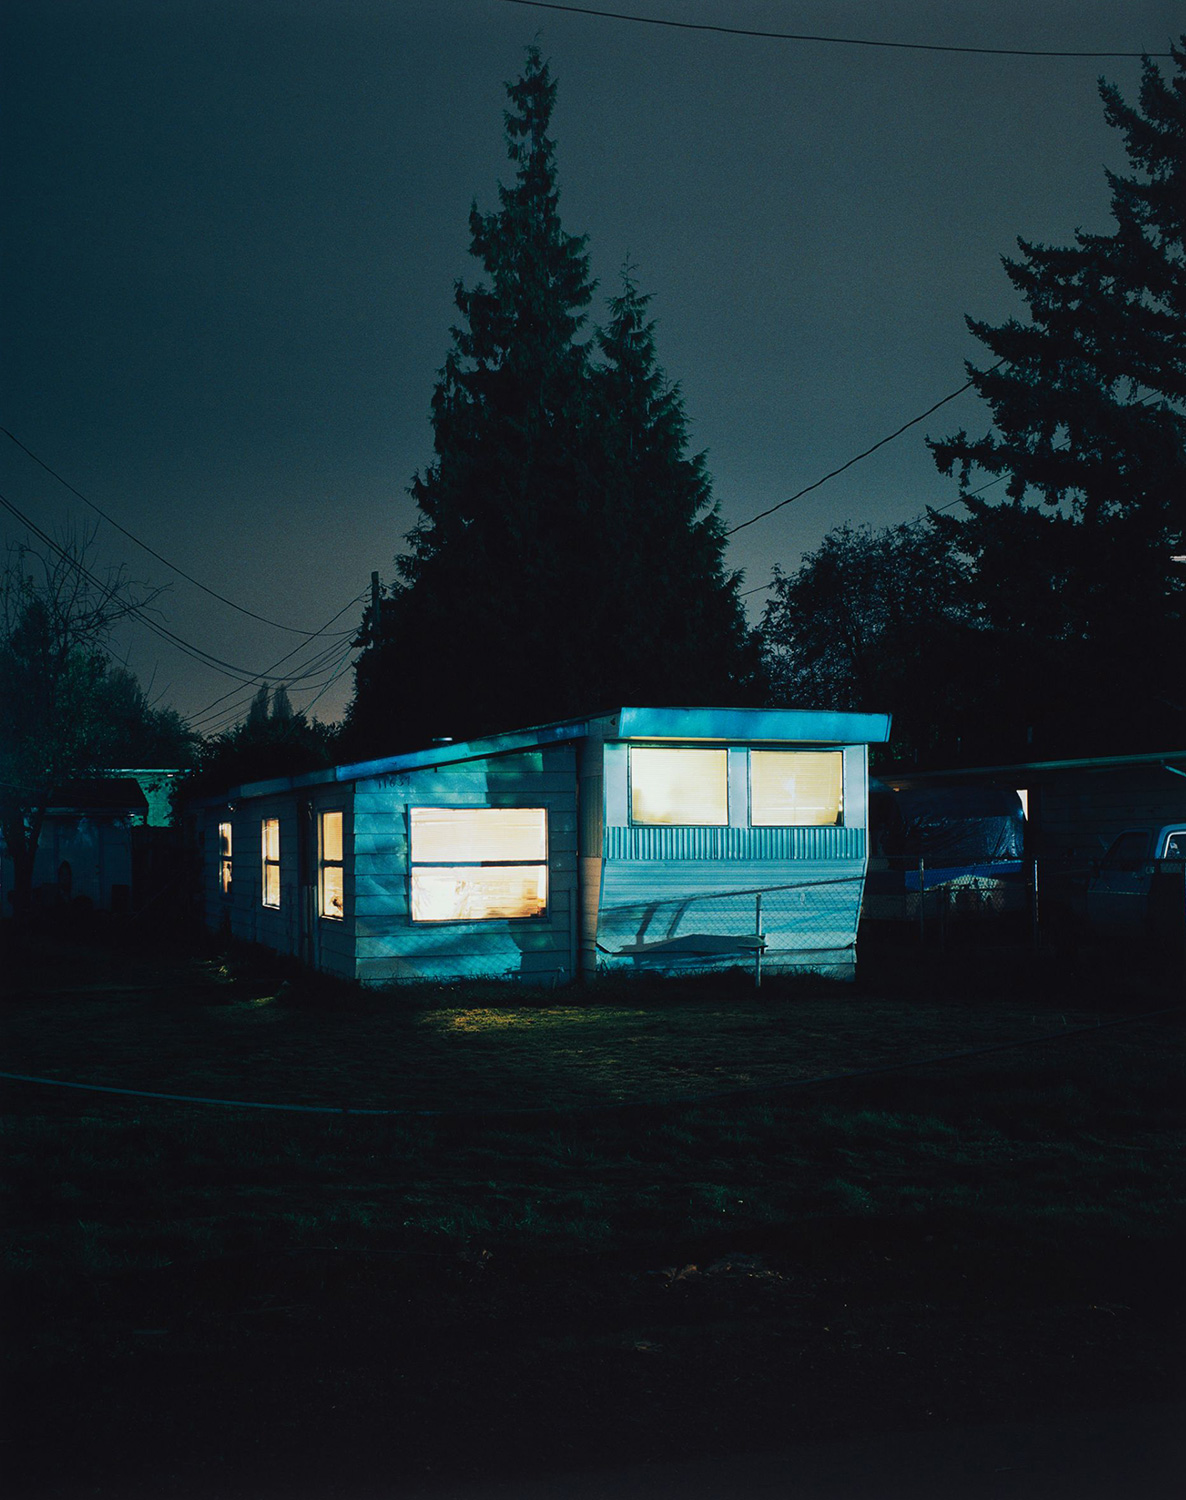 Todd Hido, #2810, 2001. Chromogenic print. Harvard Art Museums/Fogg Museum, Gift of Jamie Lunder, 2016.132.